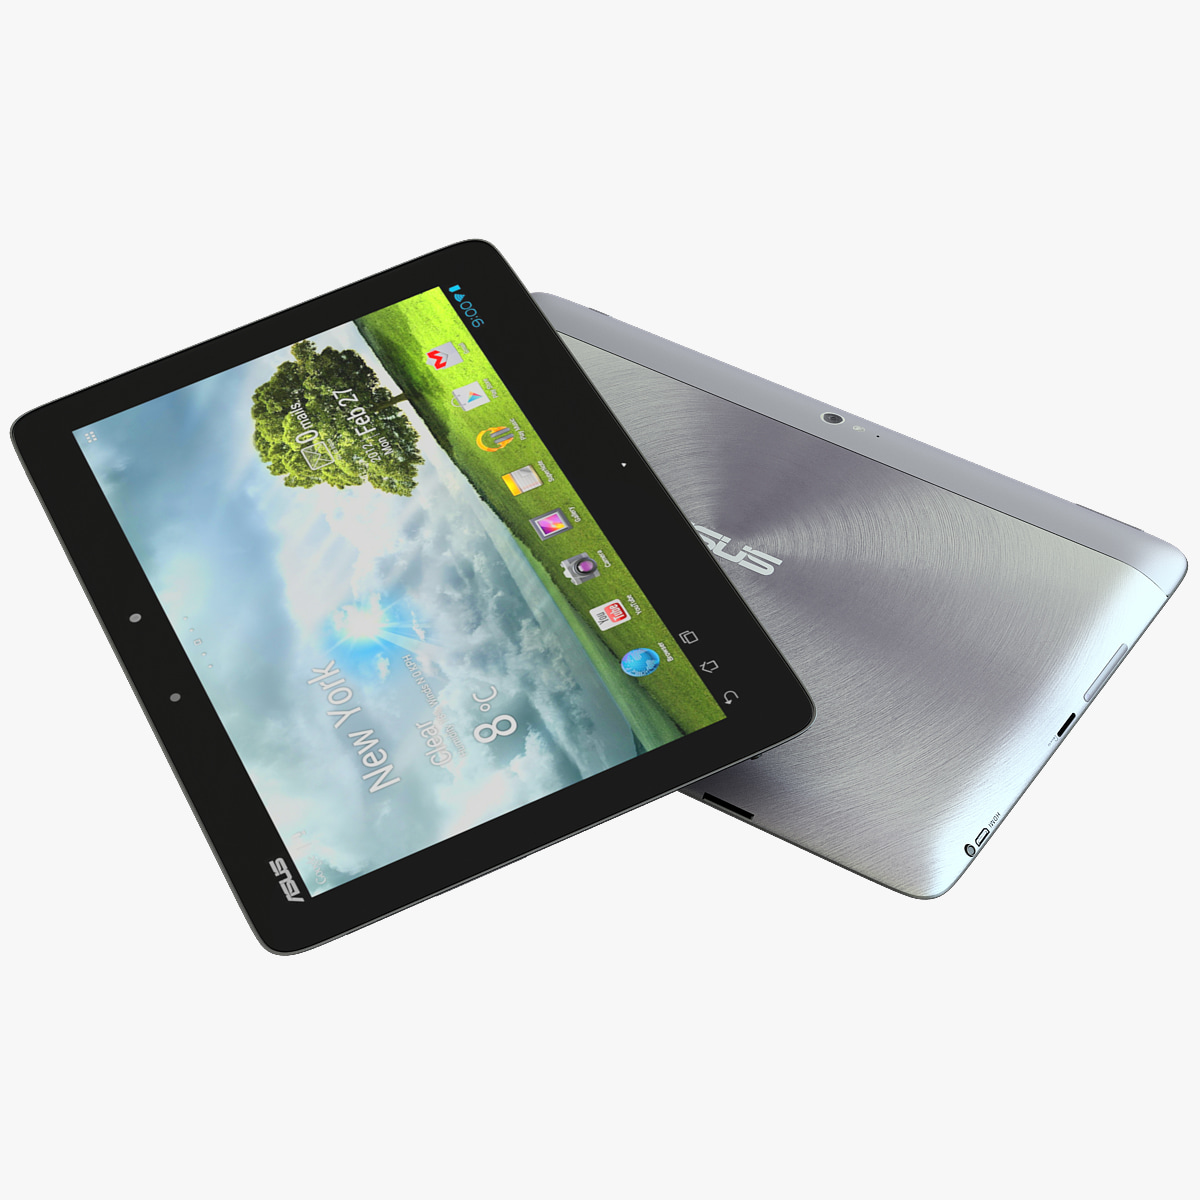 ASUS_TF700T-B1-GR_Tablet_000.jpg